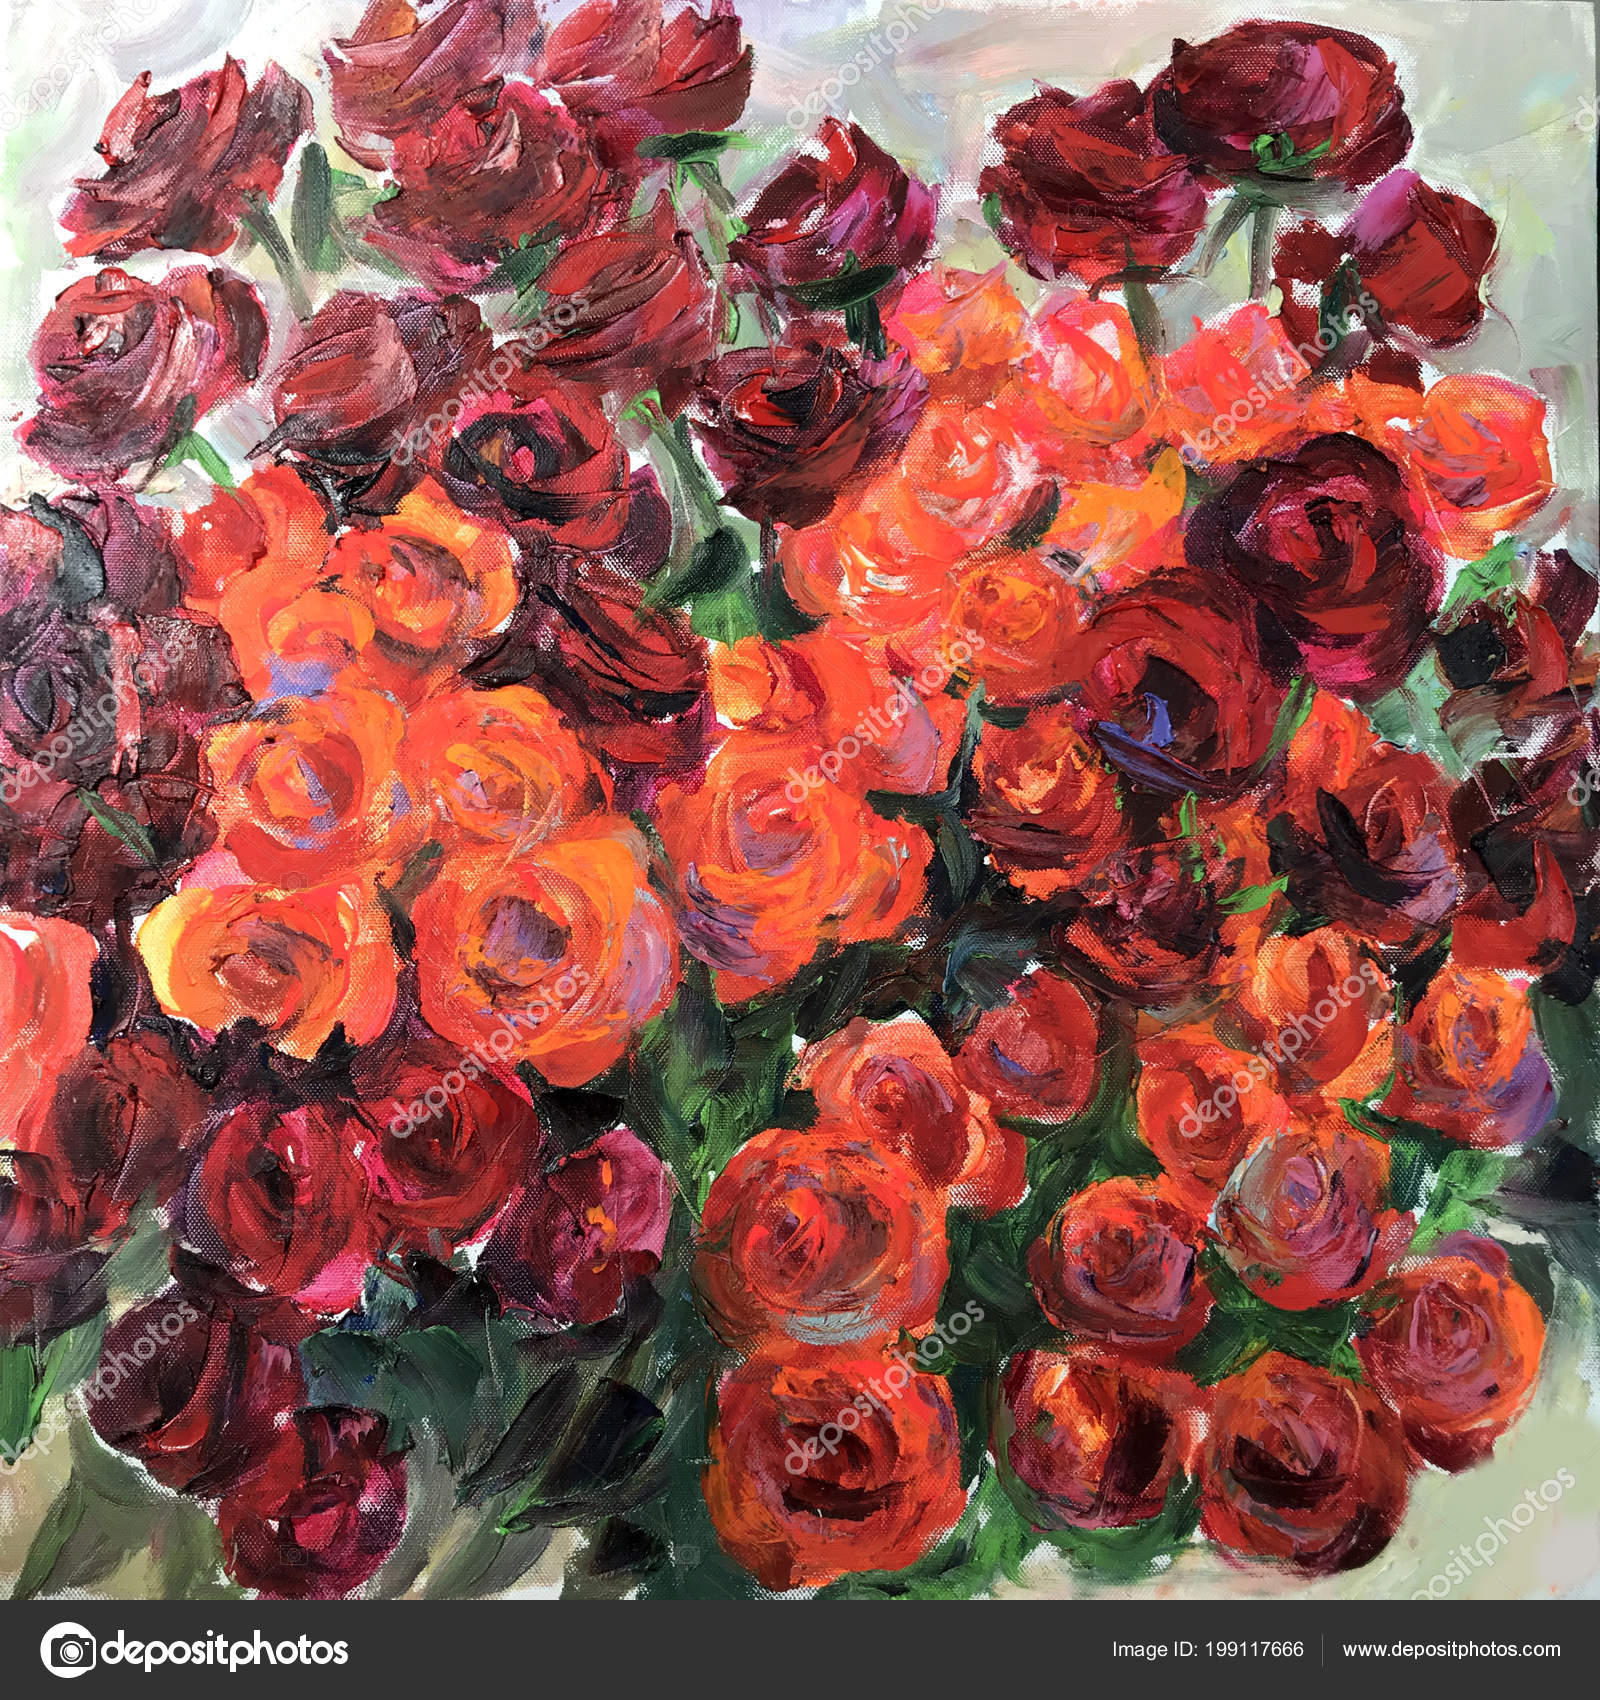 Drawing red roses flowers bouquet picture contains interesting idea drawing of red roses flowers bouquet picture contains an interesting idea evokes emotions aesthetic pleasure canvas stretched on stretcher oil natural izmirmasajfo